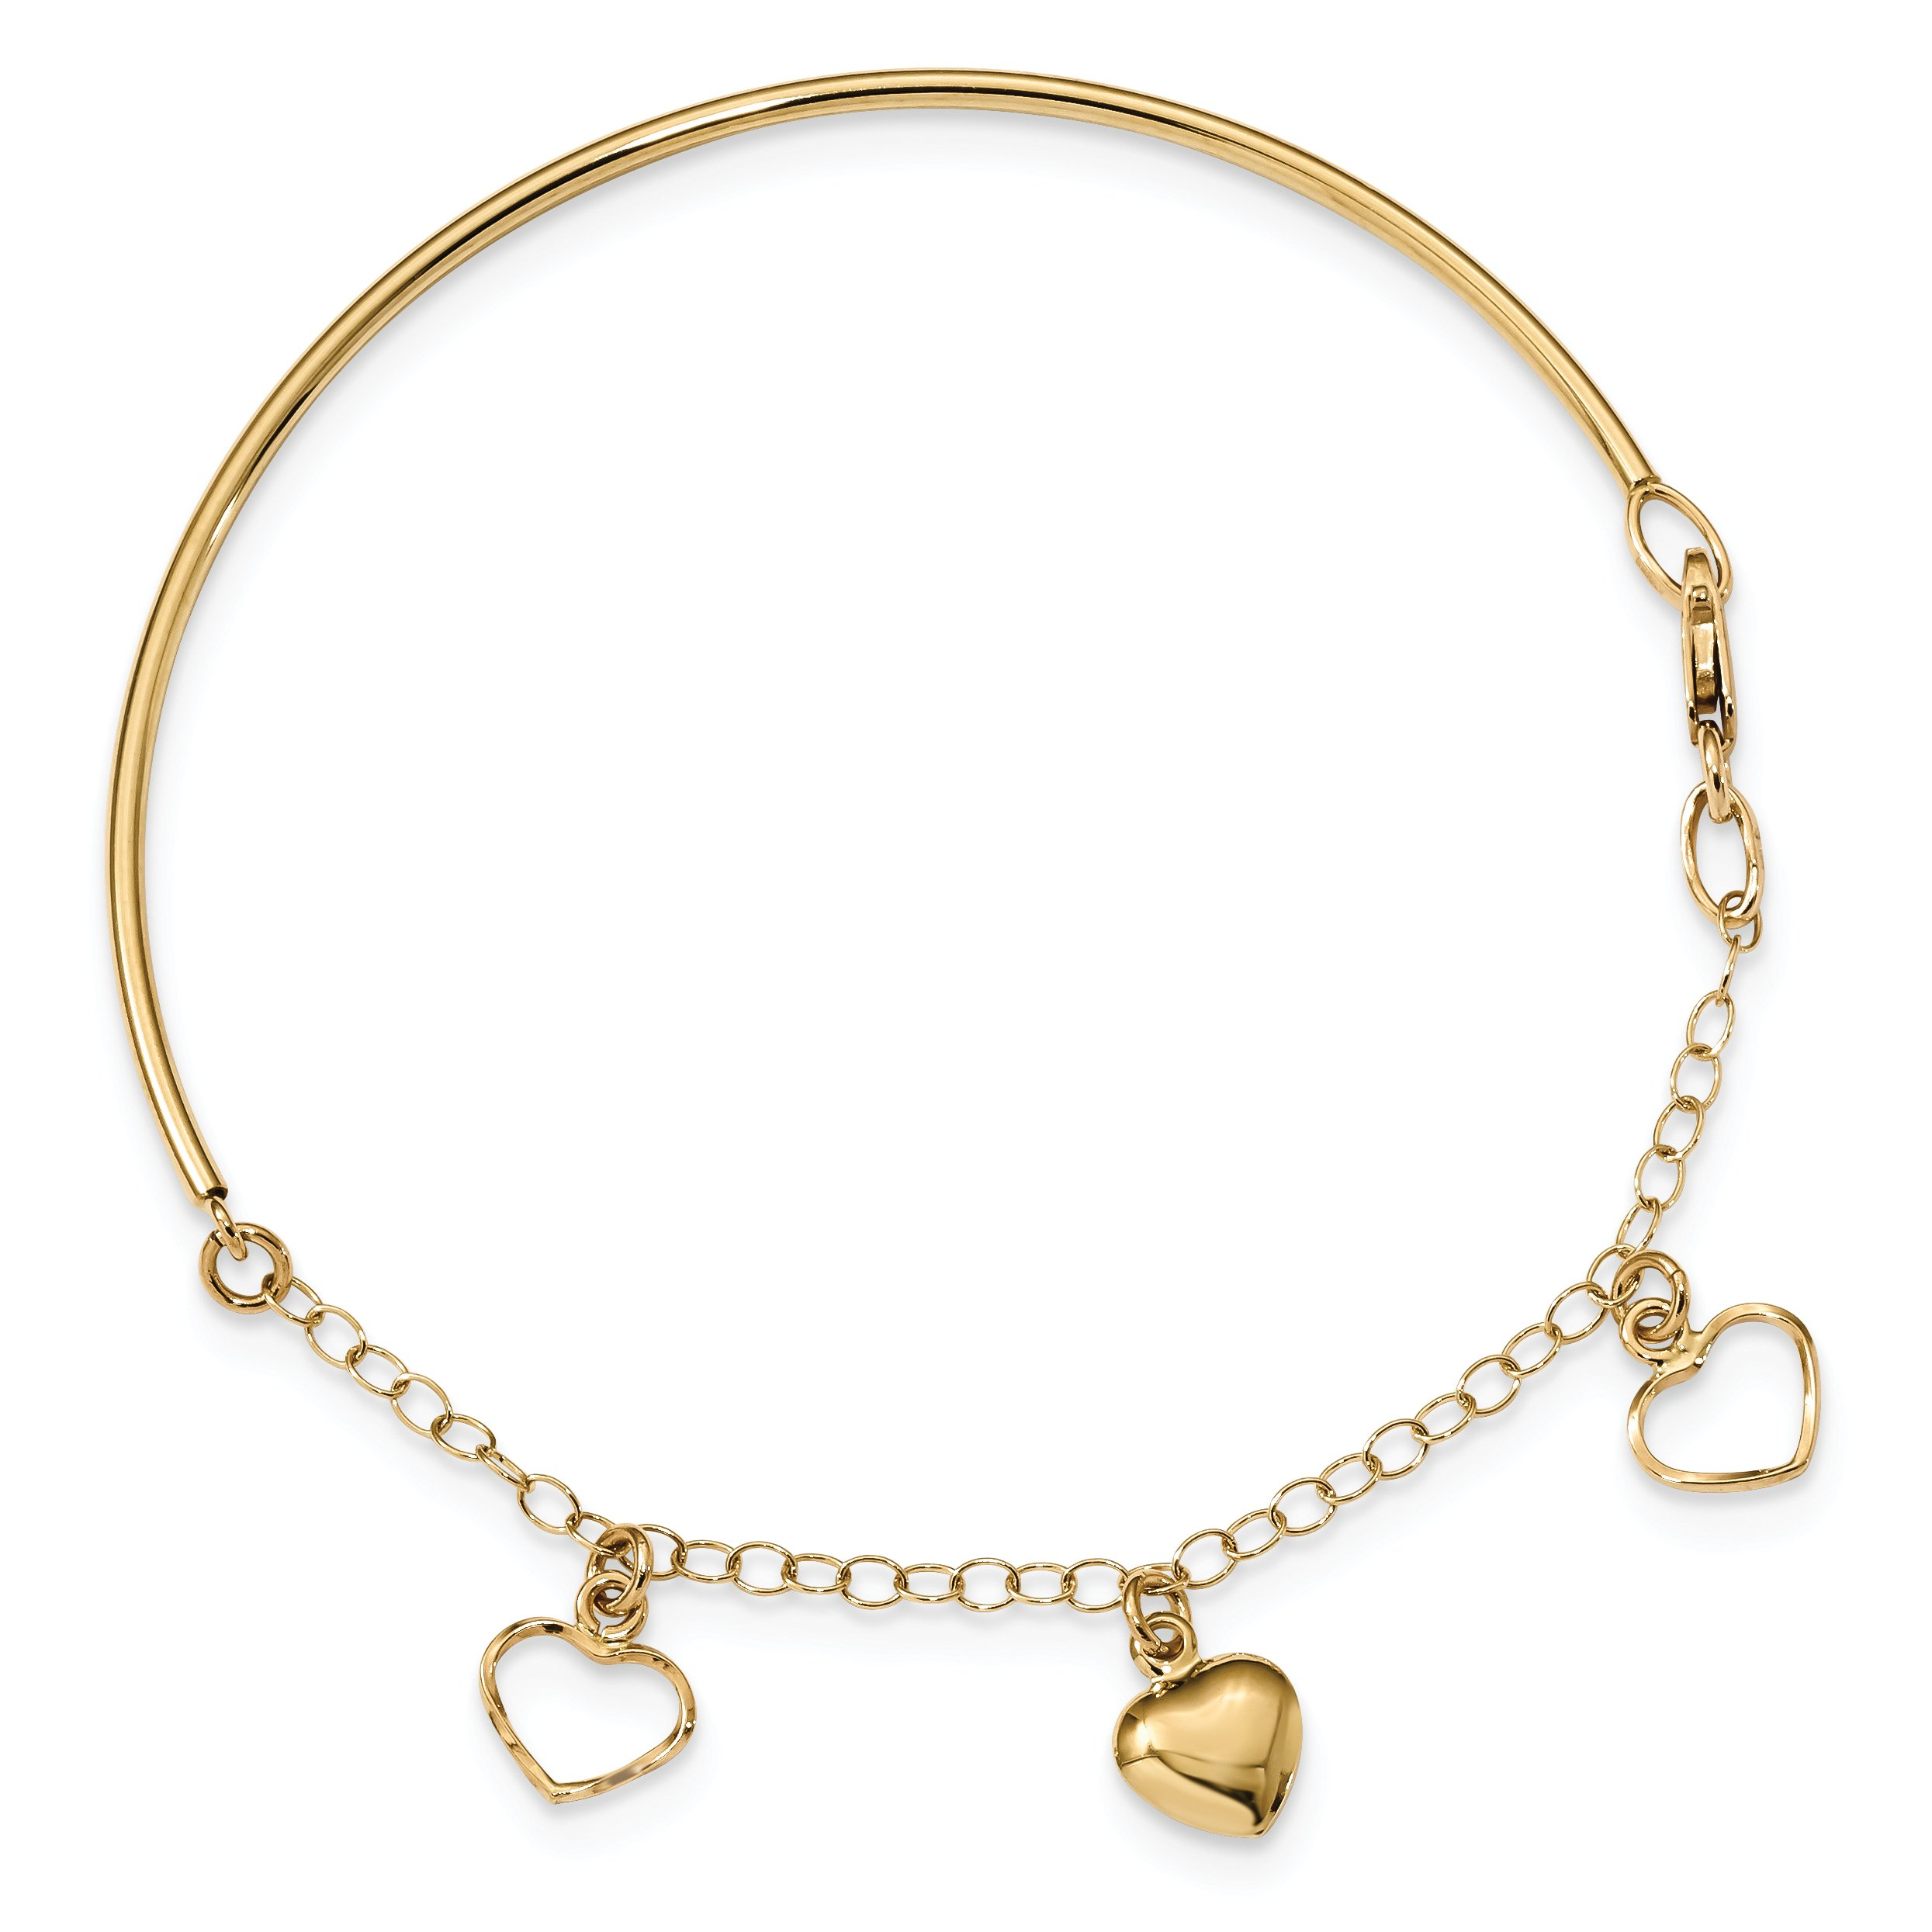 ICE CARATS 14k Yellow Gold Dangle Heart Bracelet Chain Bangle 7 Inch Fine Jewelry Gift Set For Women Heart